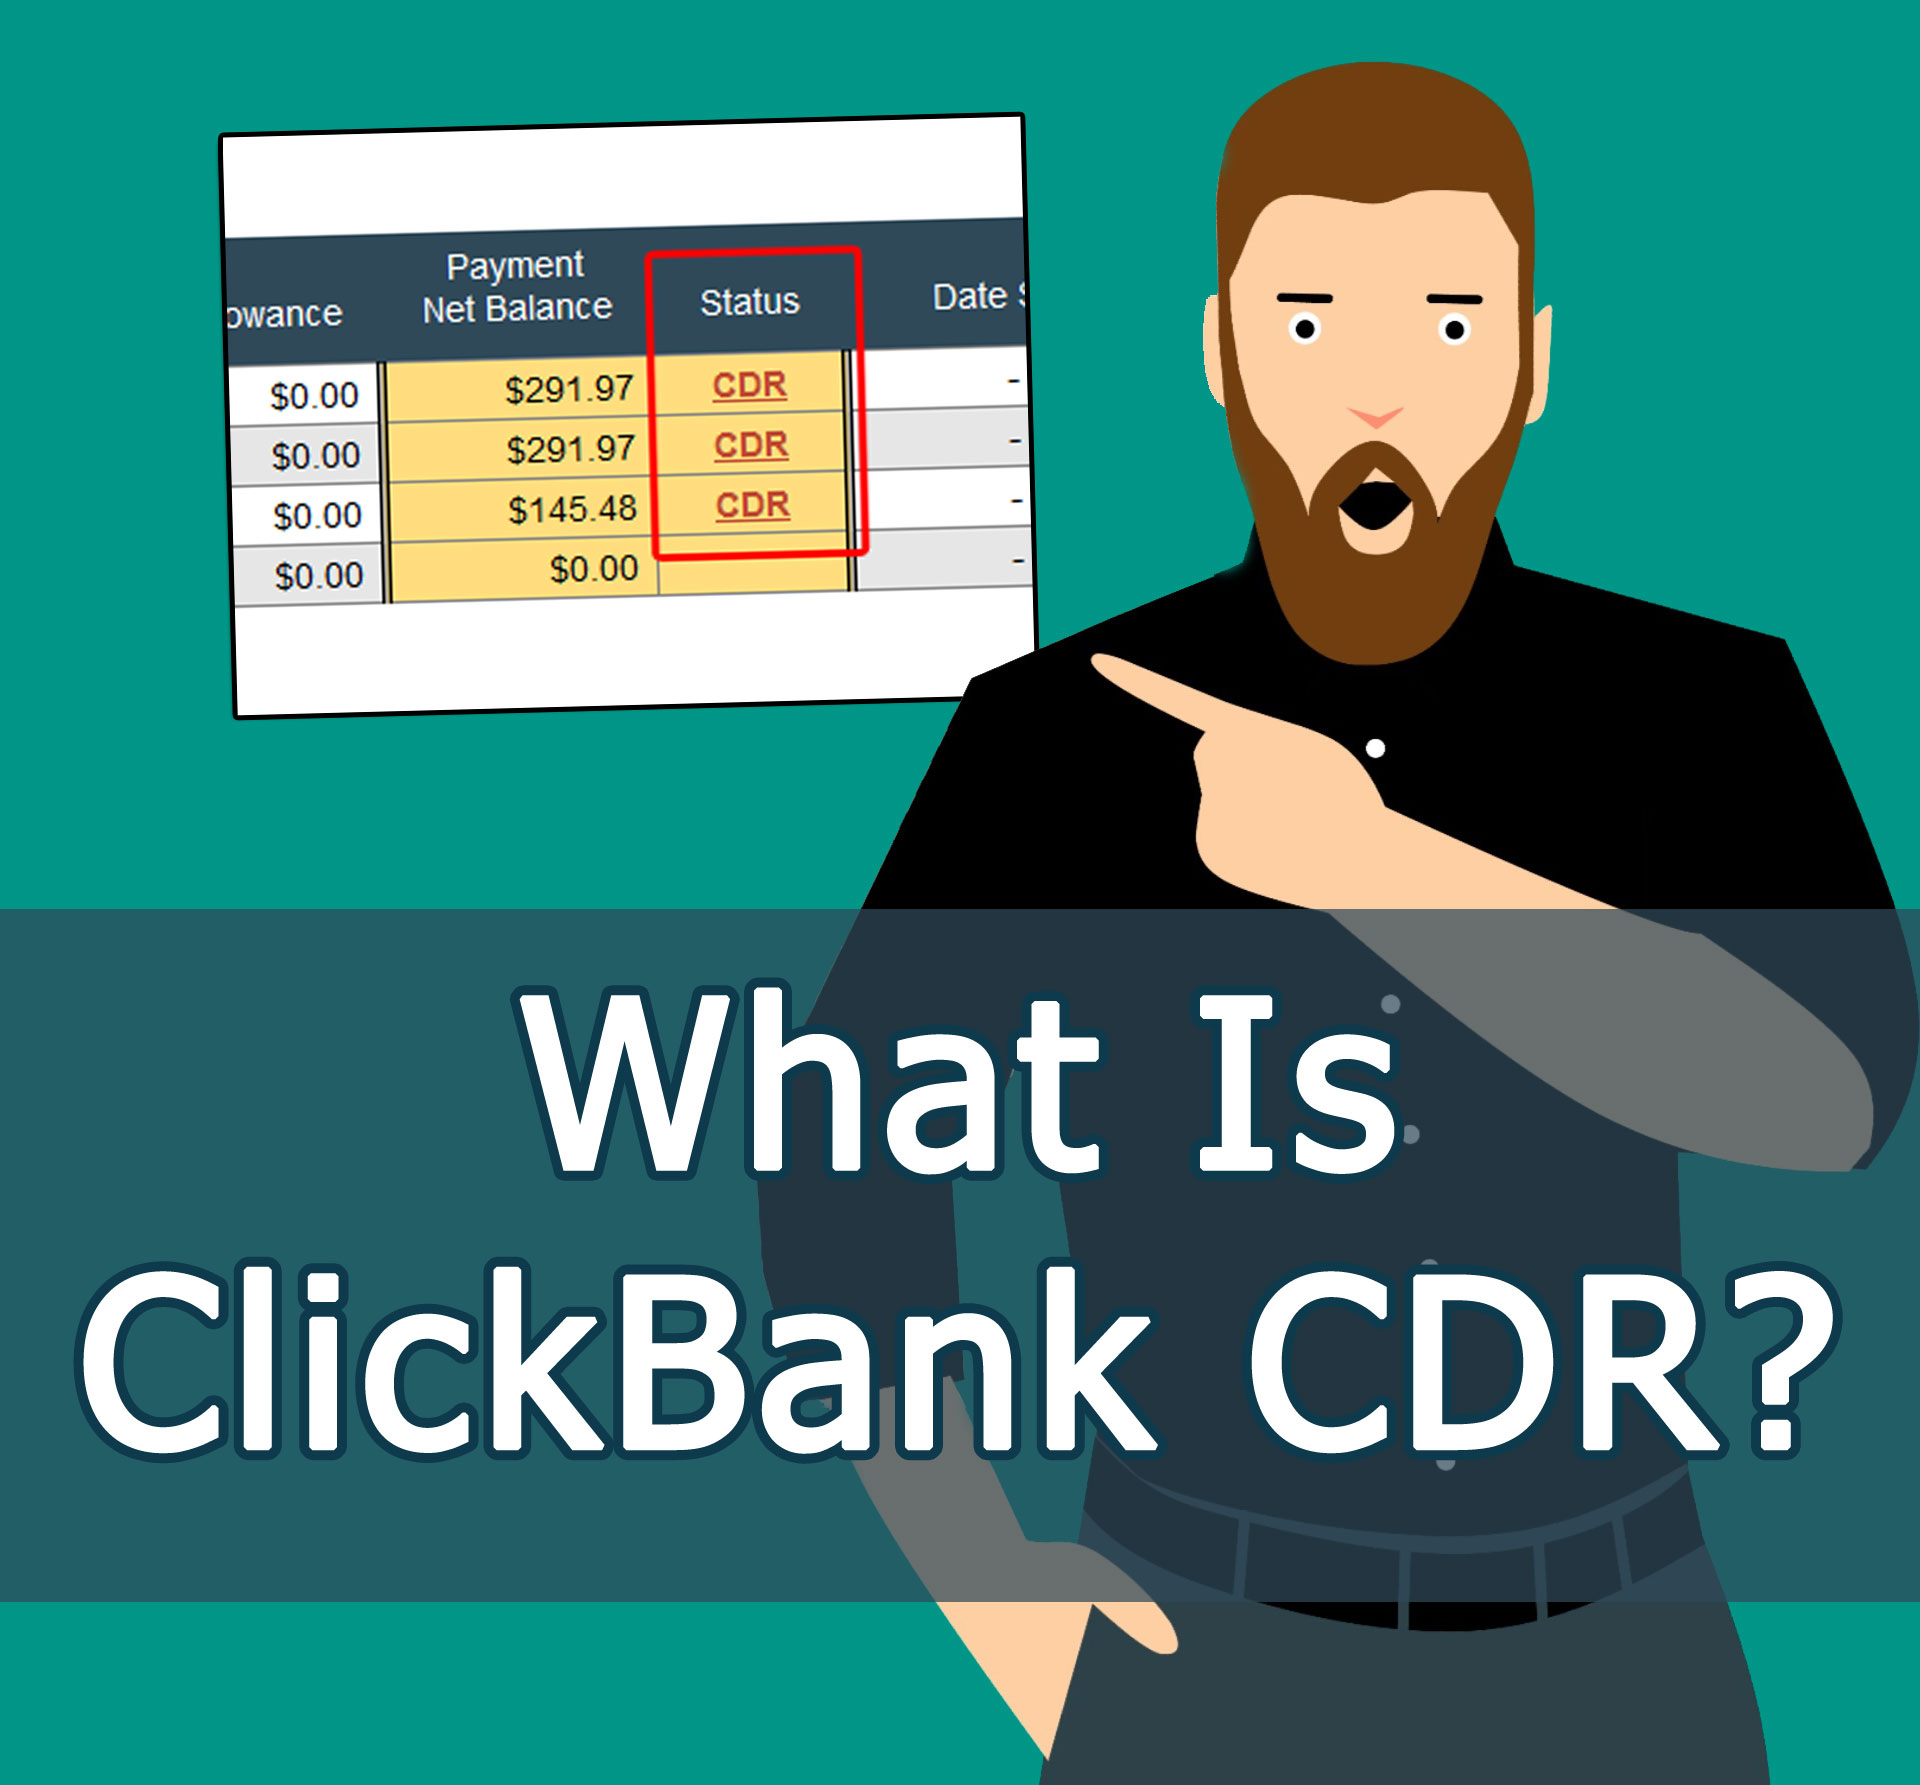 What Is ClickBank CDR?